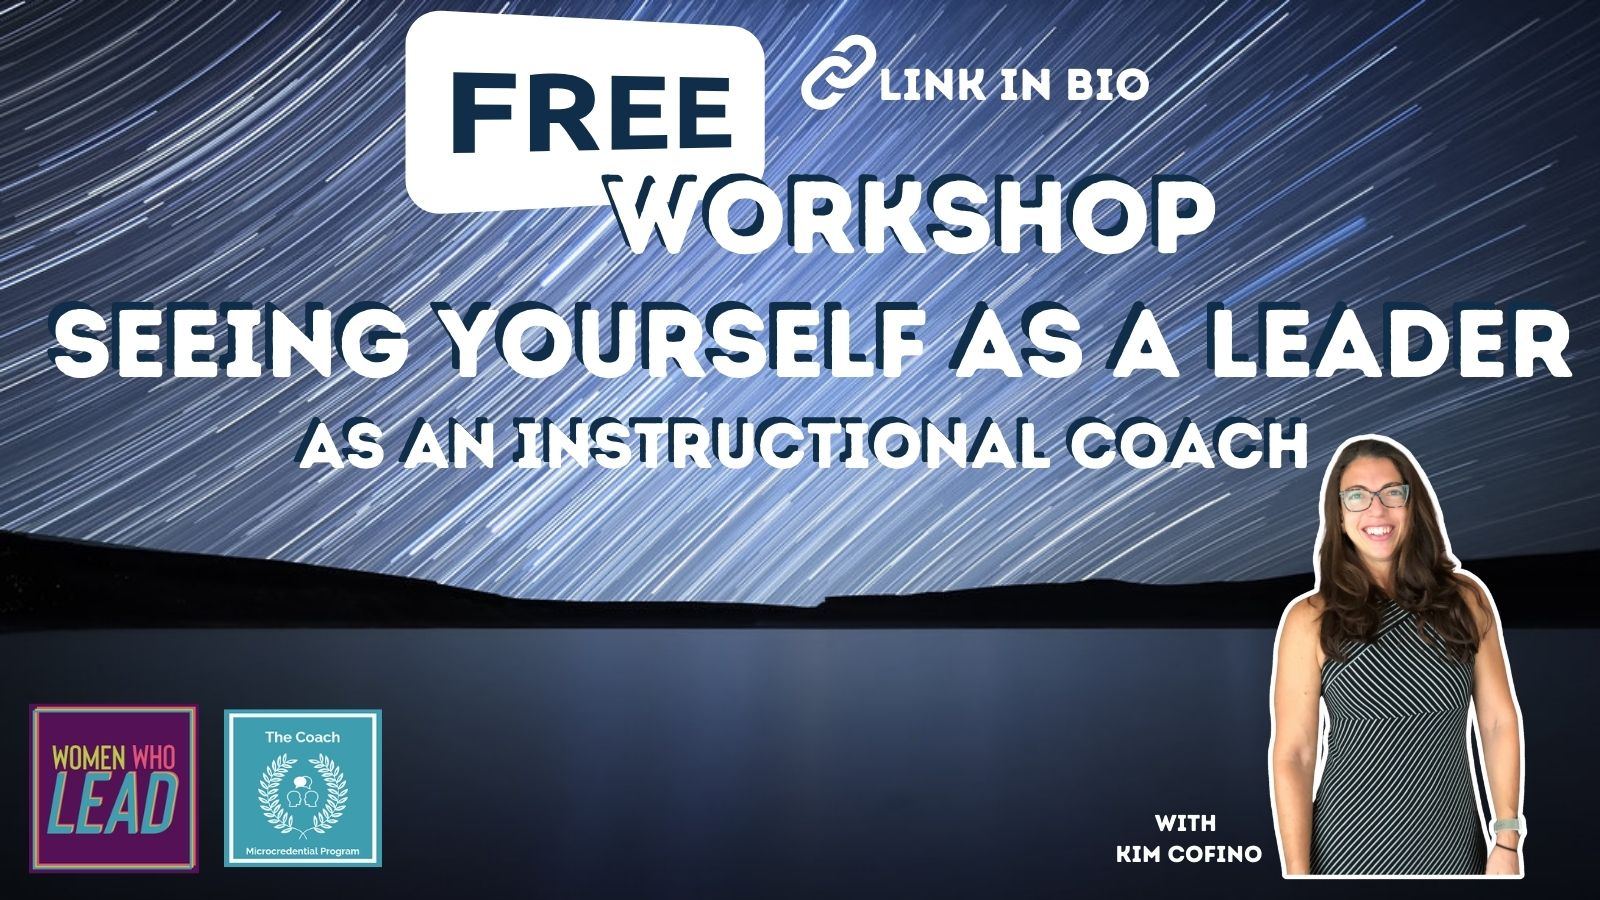 NEW: Free Workshop! Seeing Yourself as a Leader, as a Coach